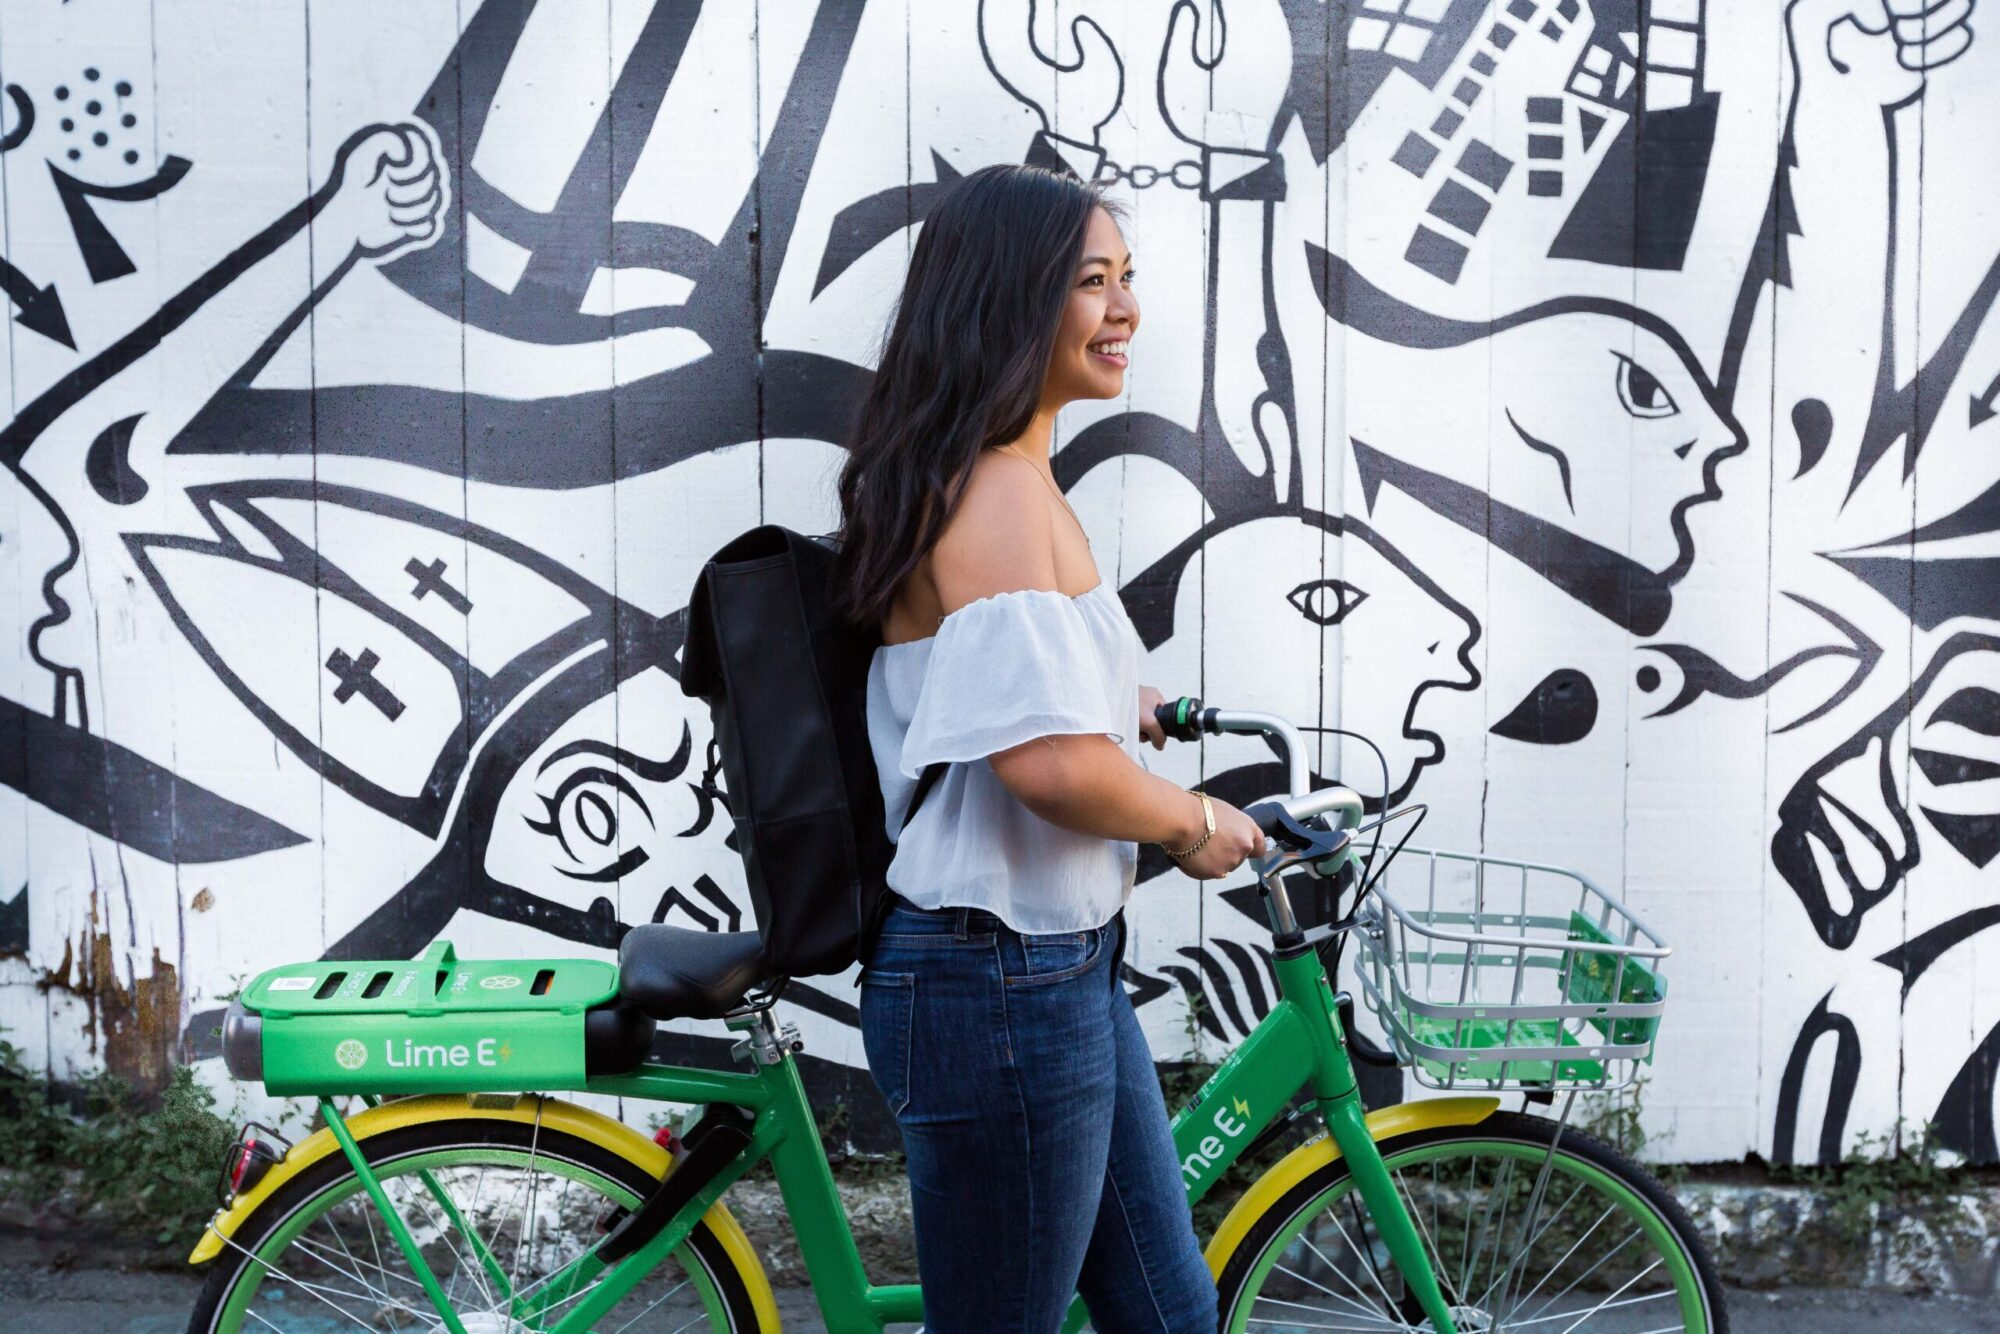 Lime invests $50m in e-bike hardware, plans to double cities it operates in